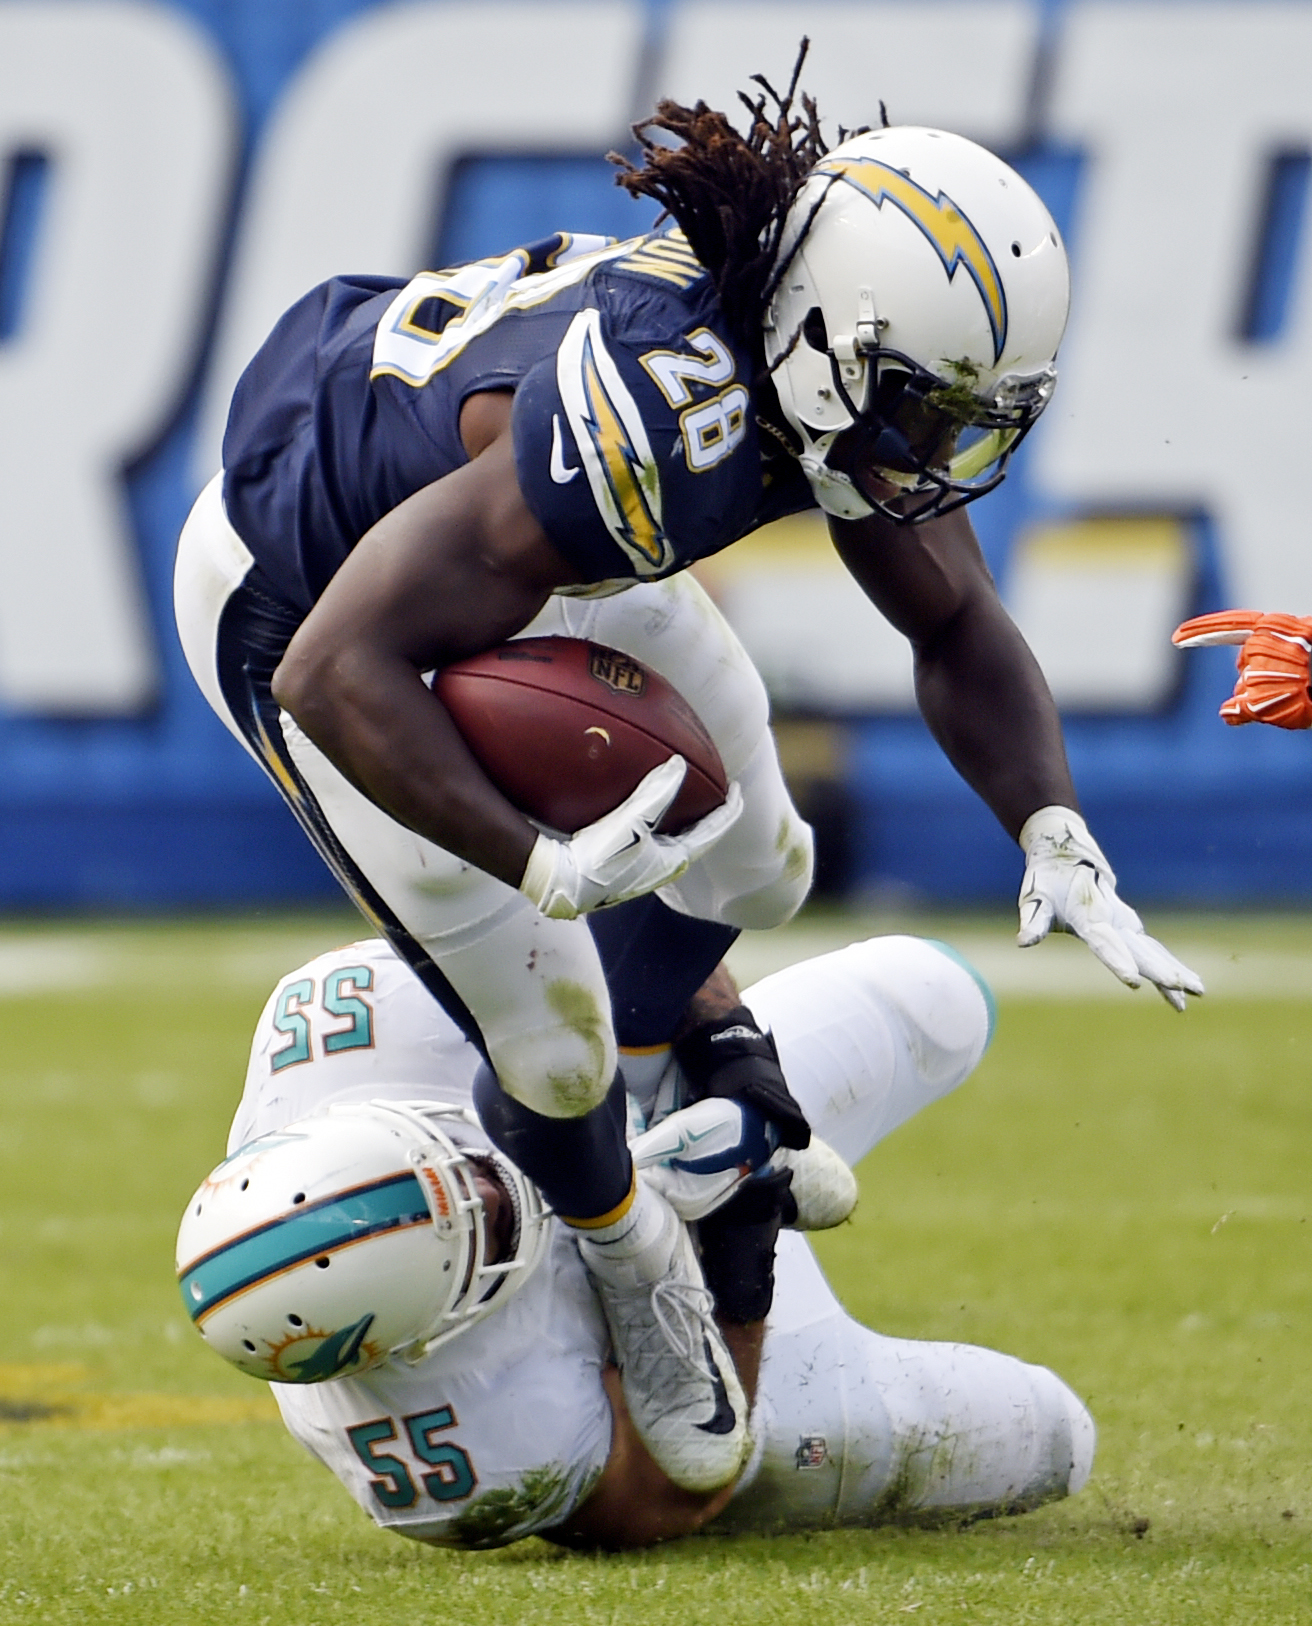 San Diego Chargers running back Melvin Gordon, top, is tackled by Miami Dolphins outside linebacker Koa Misi during the first half in an NFL football game, Sunday, Dec. 20, 2015, in San Diego. (AP Photo/Denis Poroy)